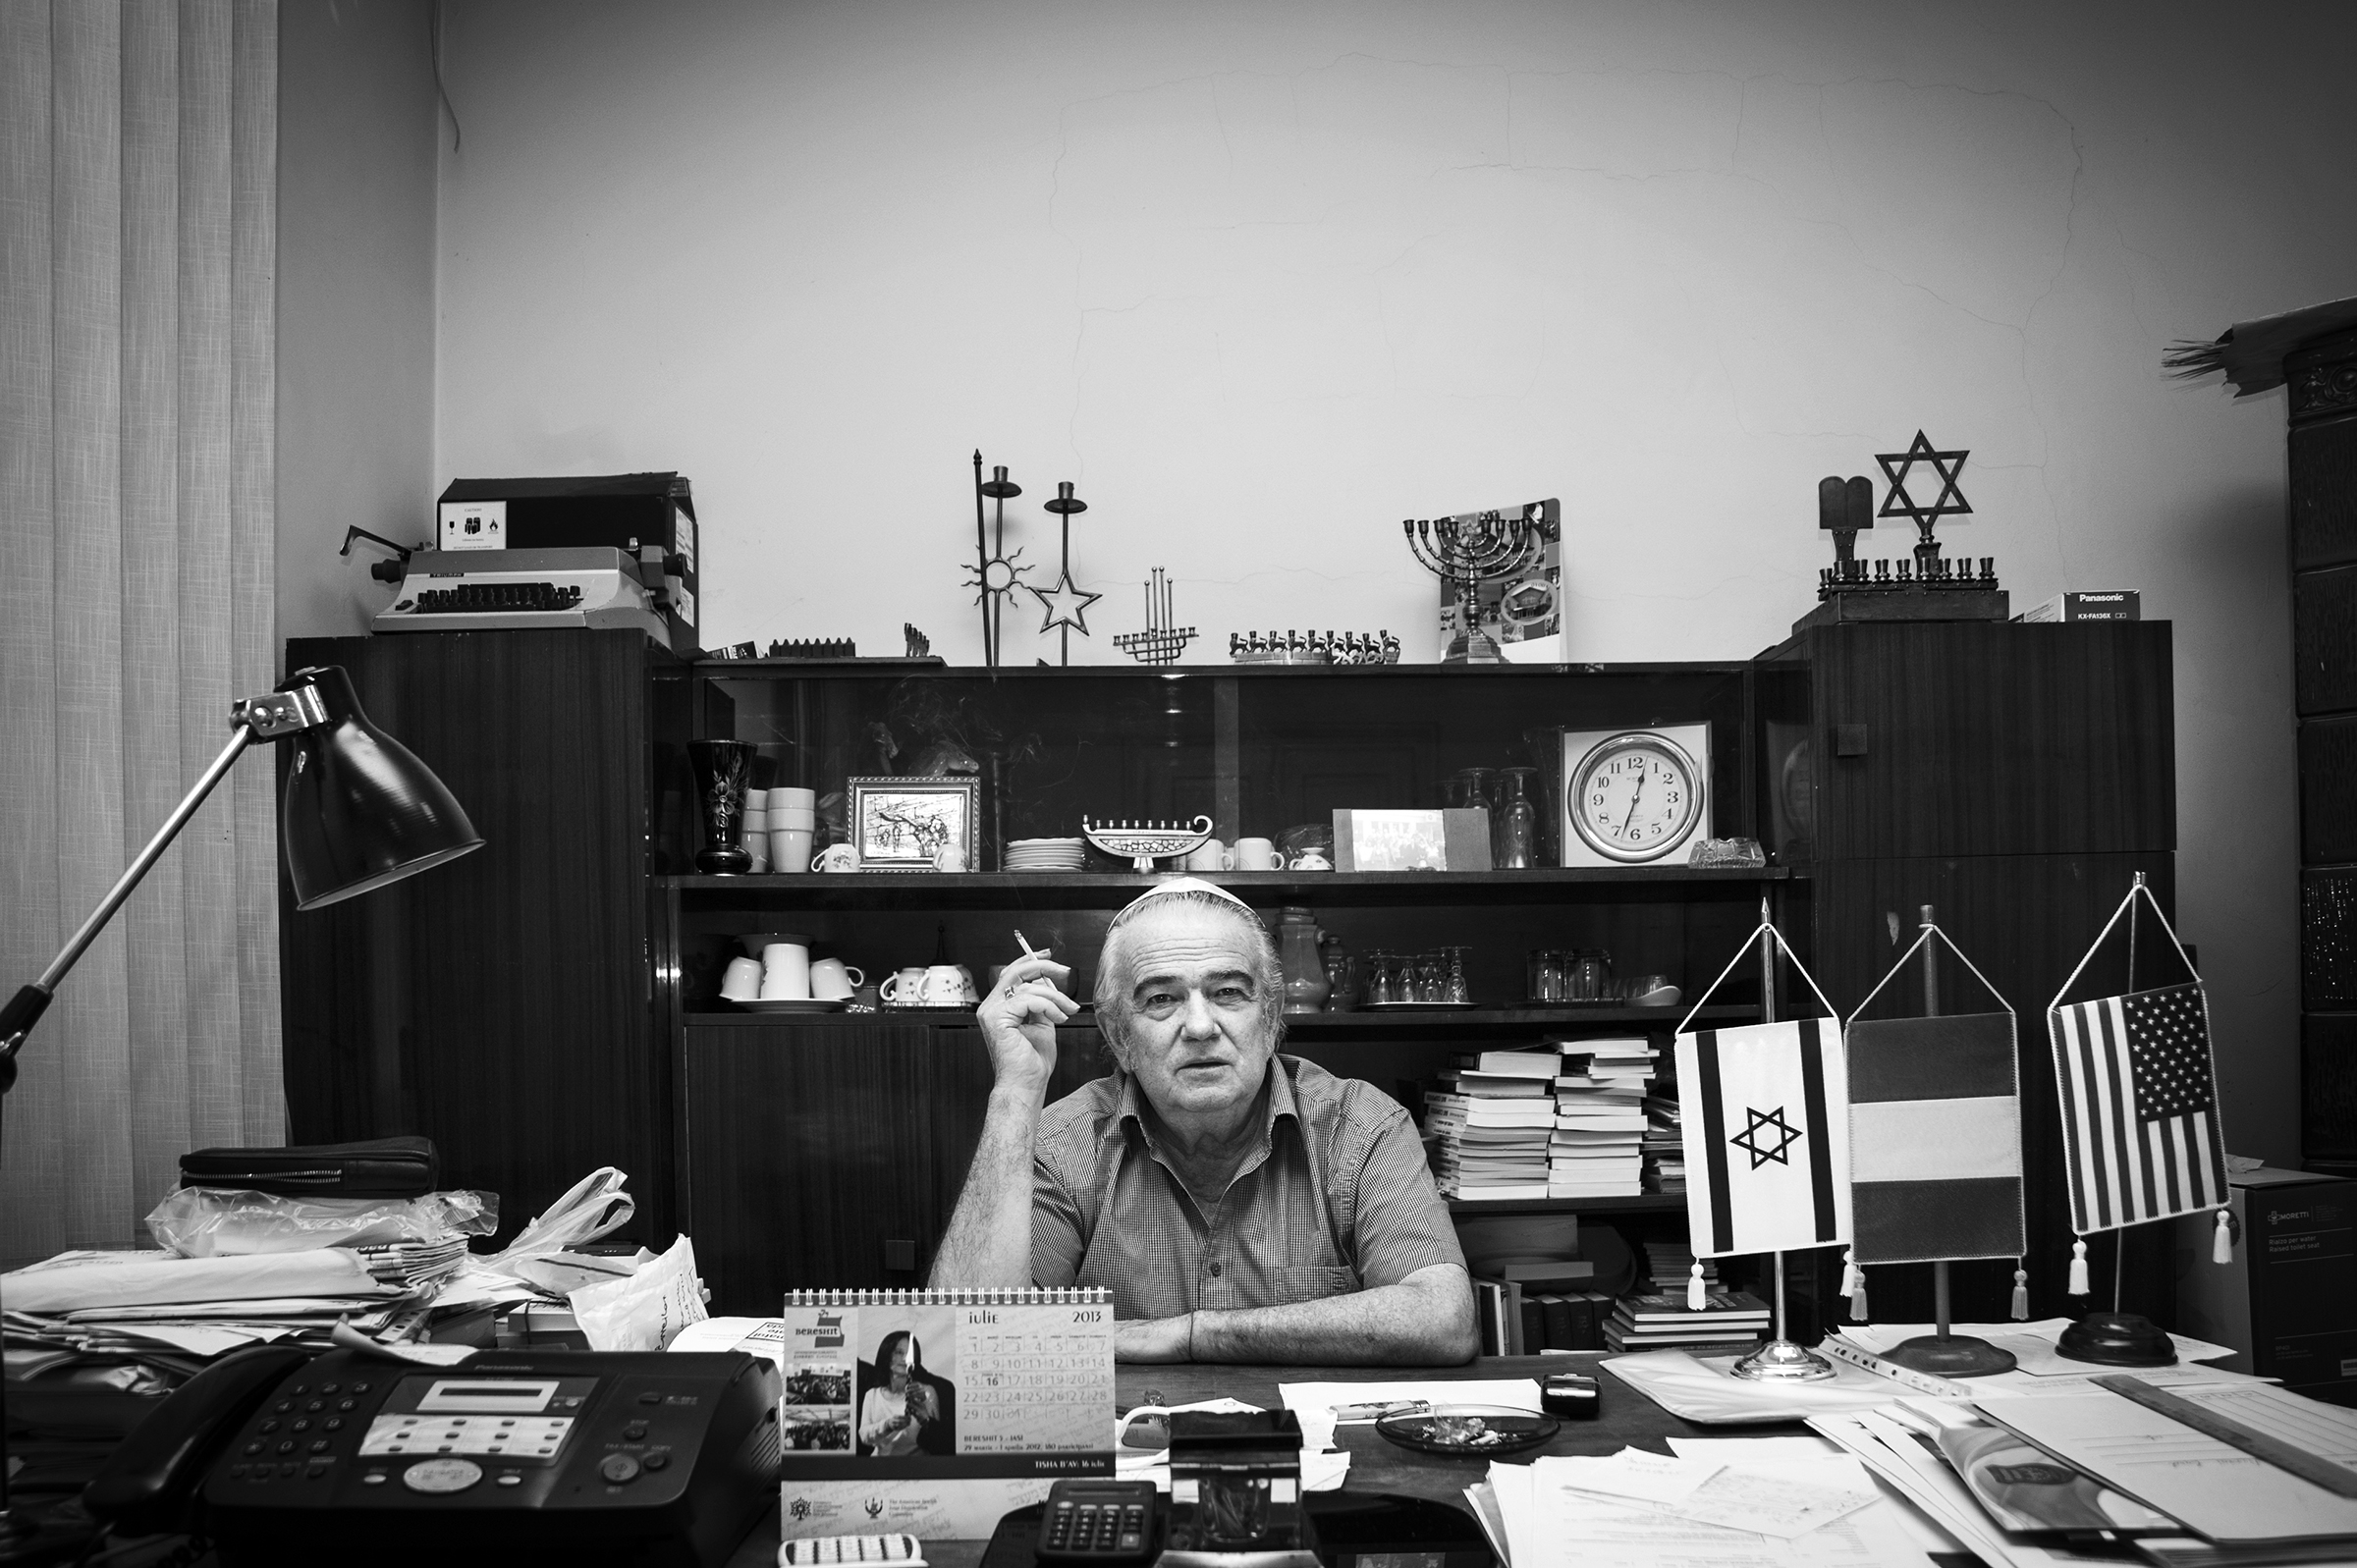 Teodor Koppelmann, President of the Jewish Community Center in Oradea, Romania, sits behind his cluttered desk where he often chains-mokes while overseeing the day-to-day business and attending to the needs of his community members on August 26, 2013. (Photo by Daniel Owen/GroundTruth)